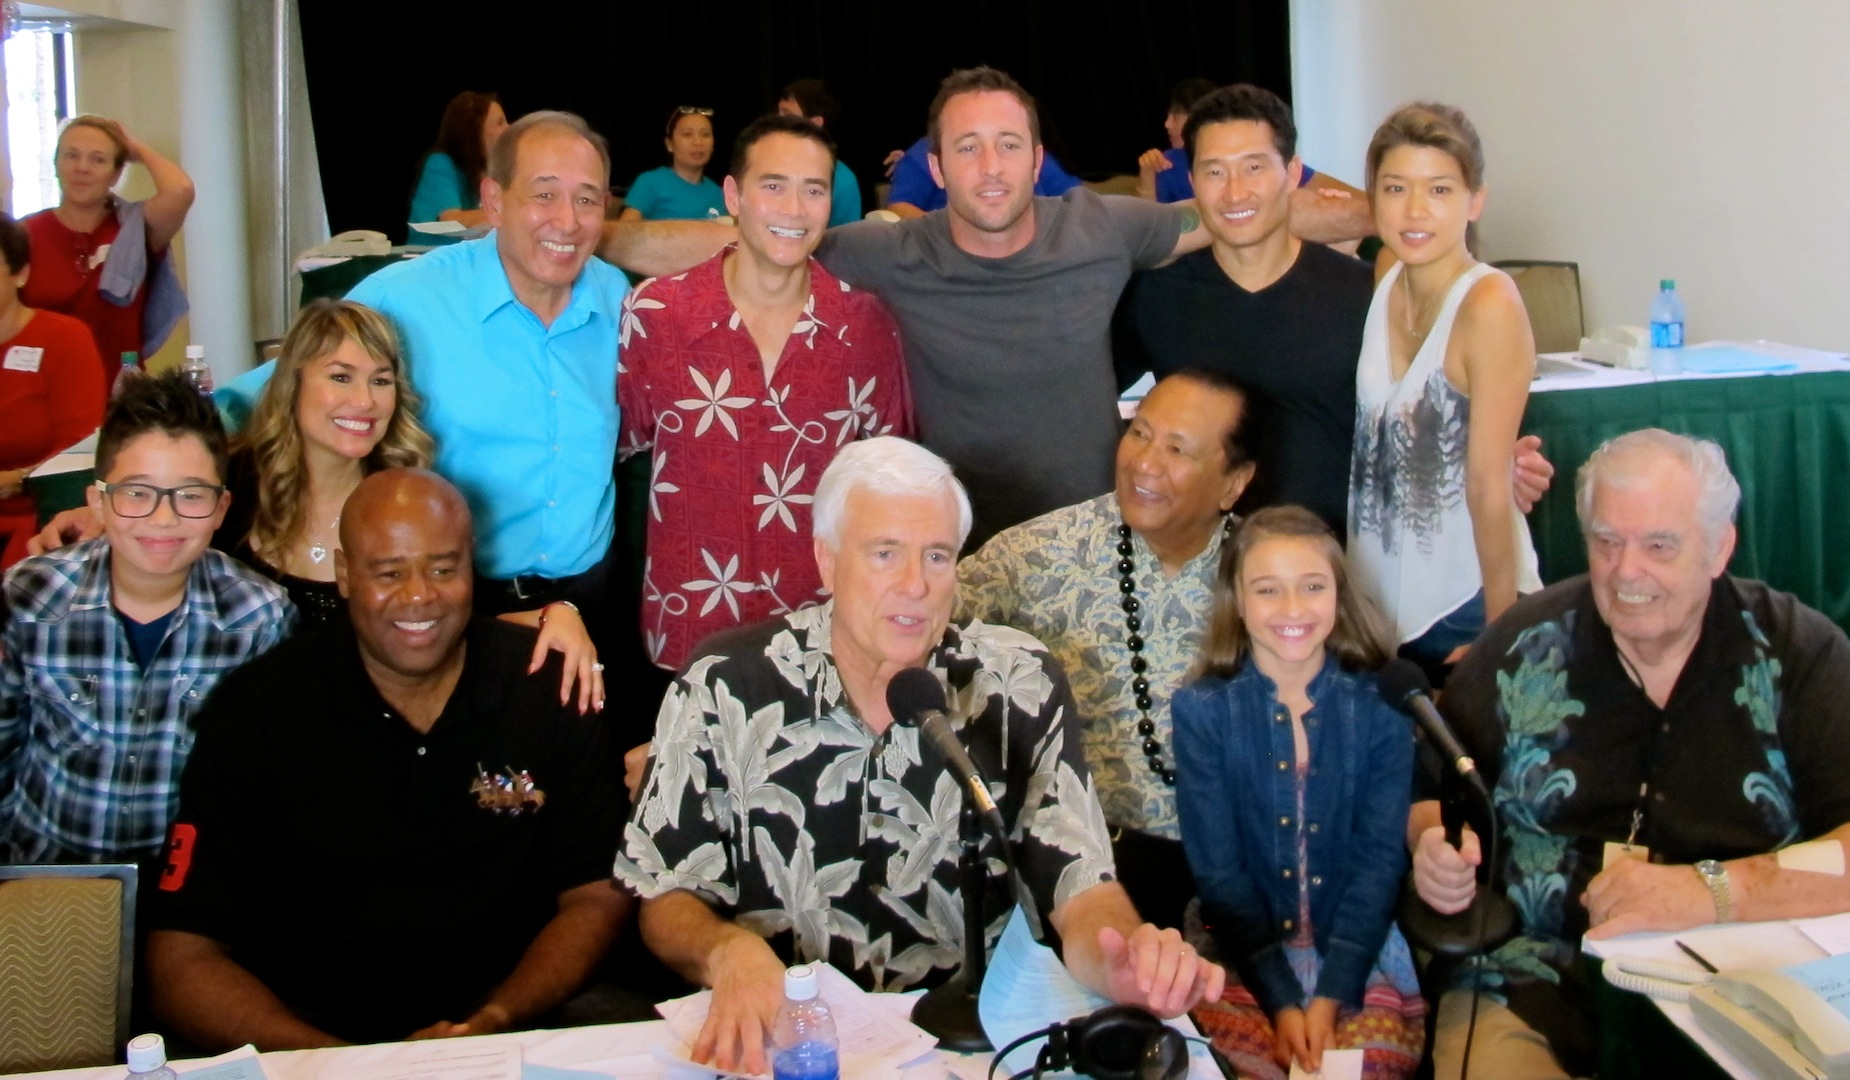 The Cast of Hawaii Five-0 Gives Back